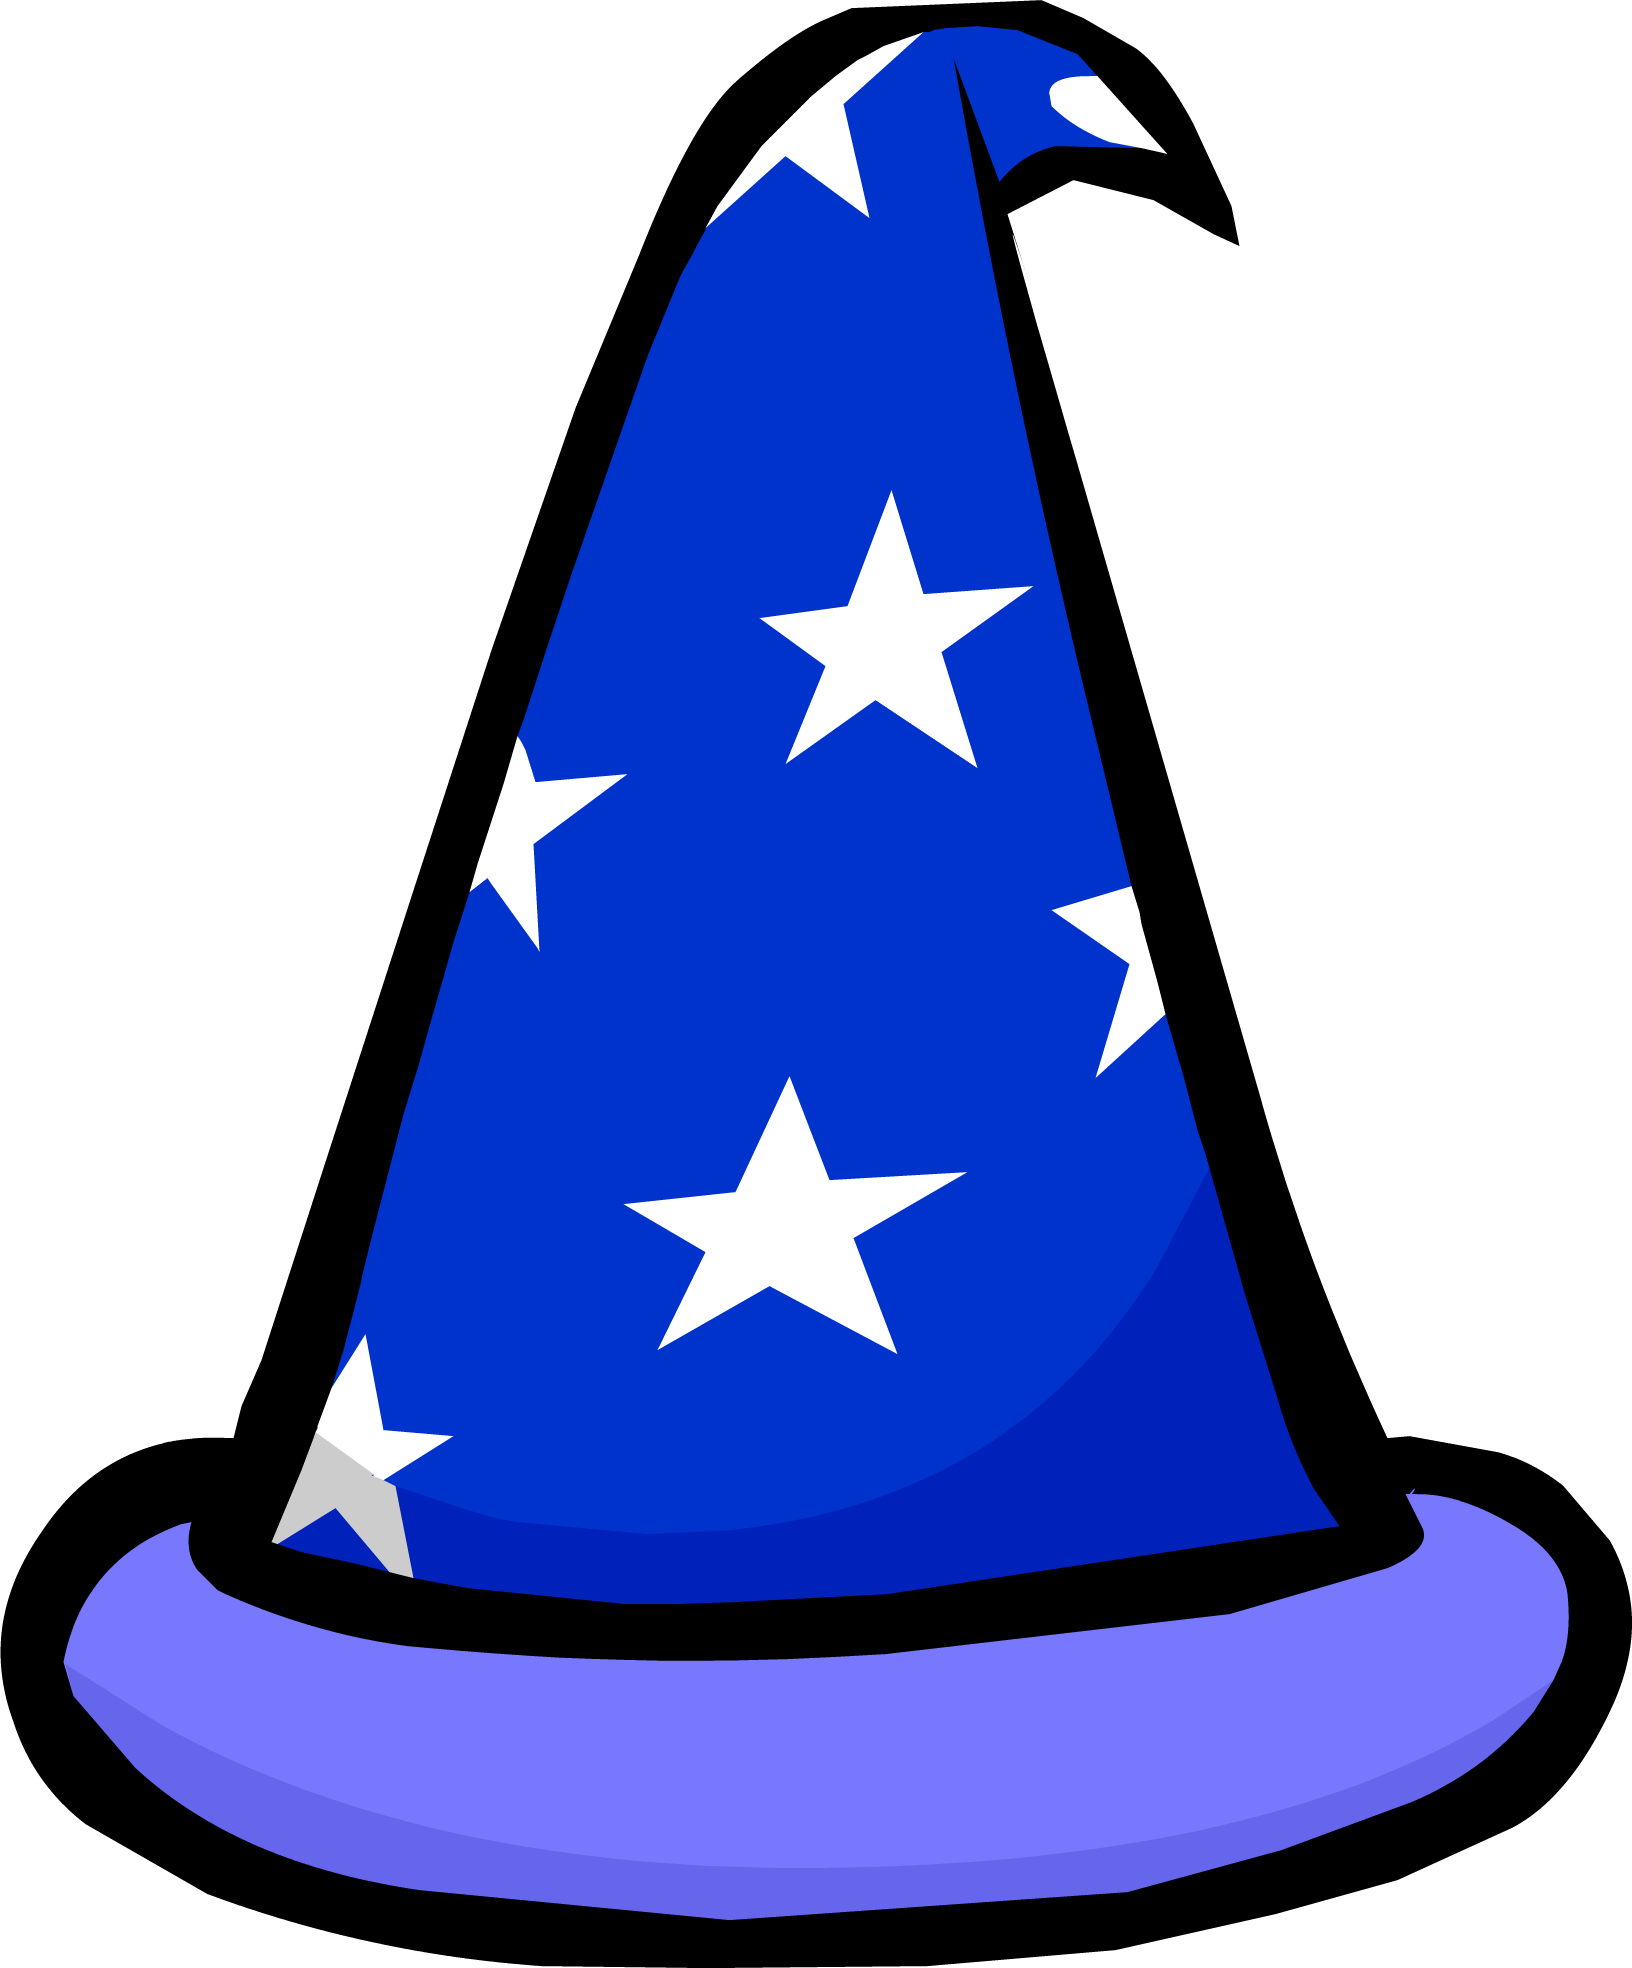 Hat clipart medieval. Image wizard png club